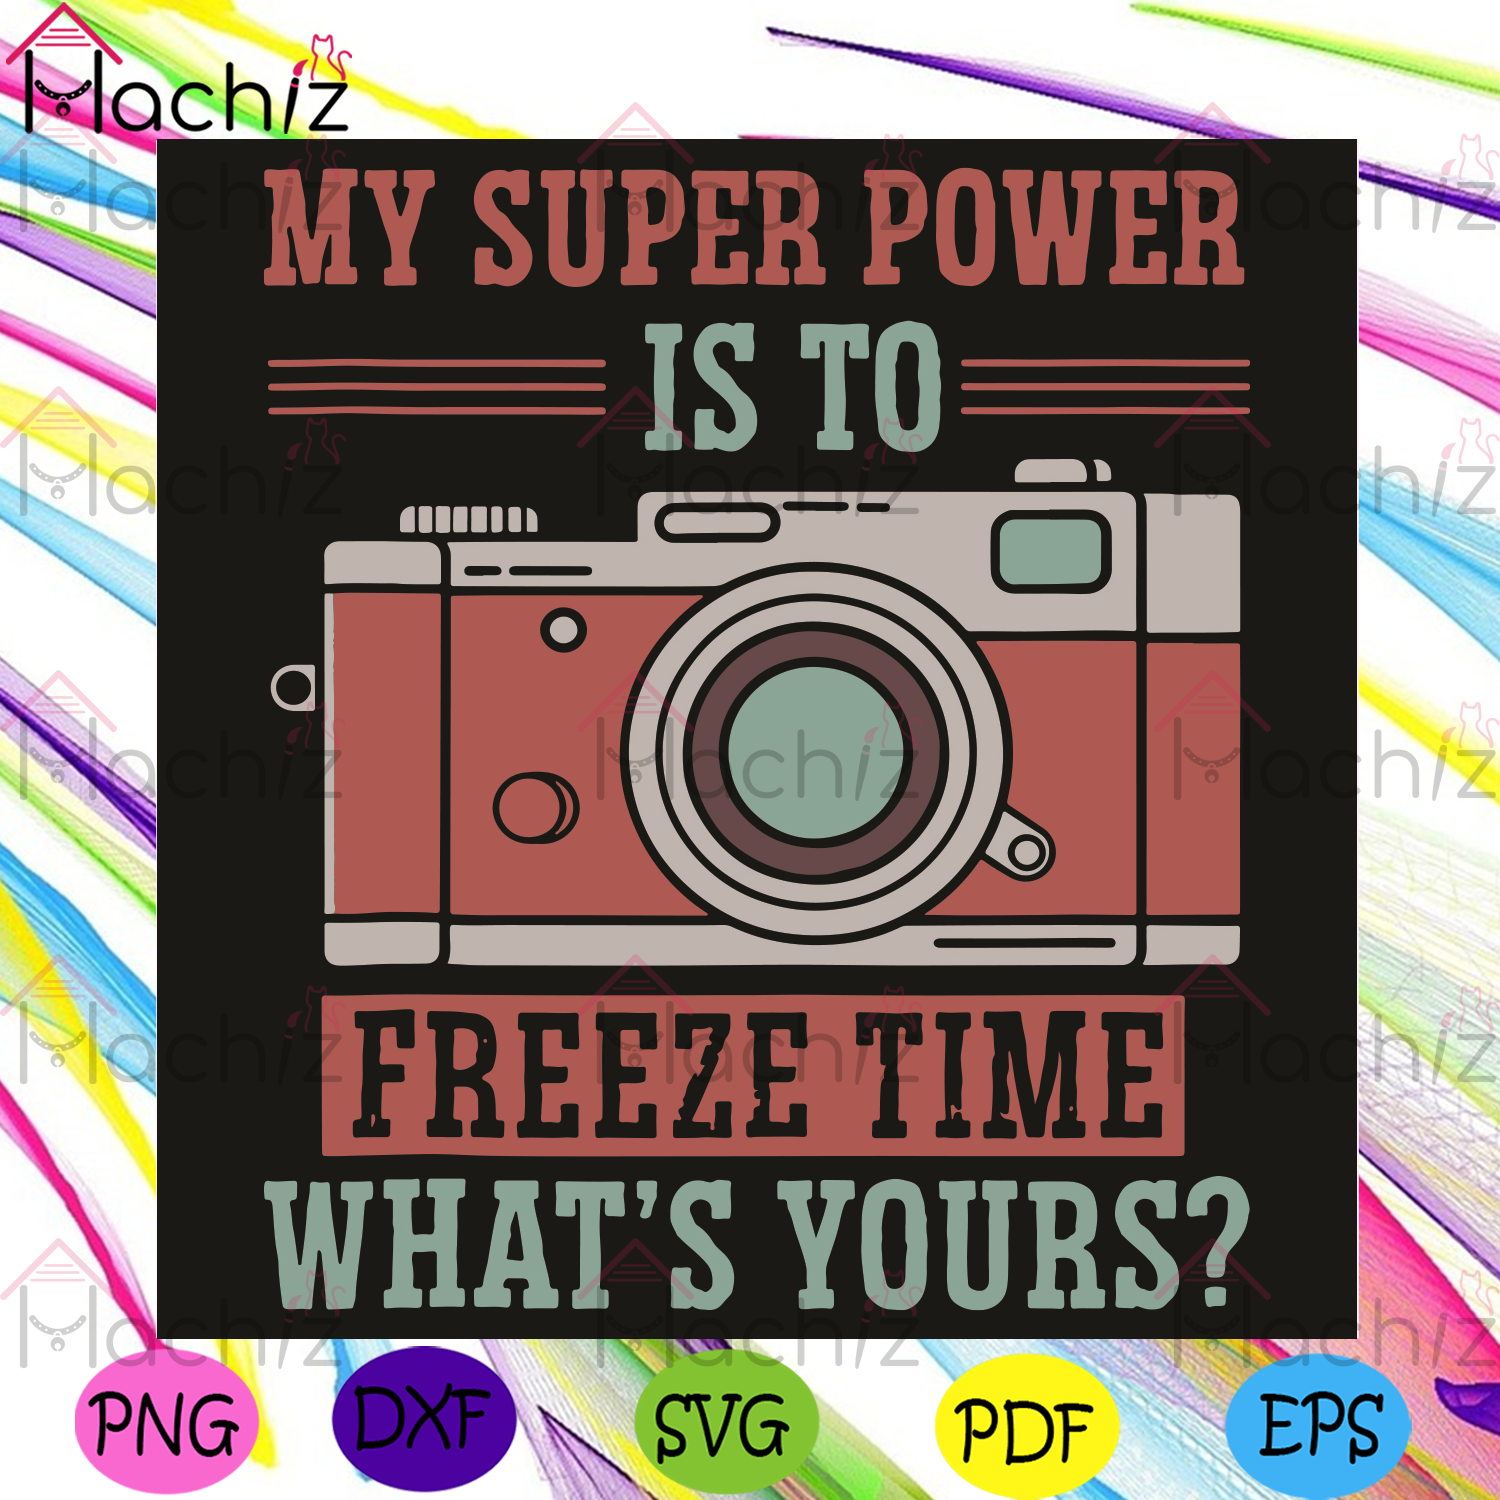 My Super Power Is To Freeze Time What Is Yours Svg, Trending Svg, Superpower Svg, Camera Svg, Freeze Time Svg, Camera Lovers Svg, Photography Svg, Vintage Svg, Retro Svg, Photos Svg, Photographers Svg, Picture Svg